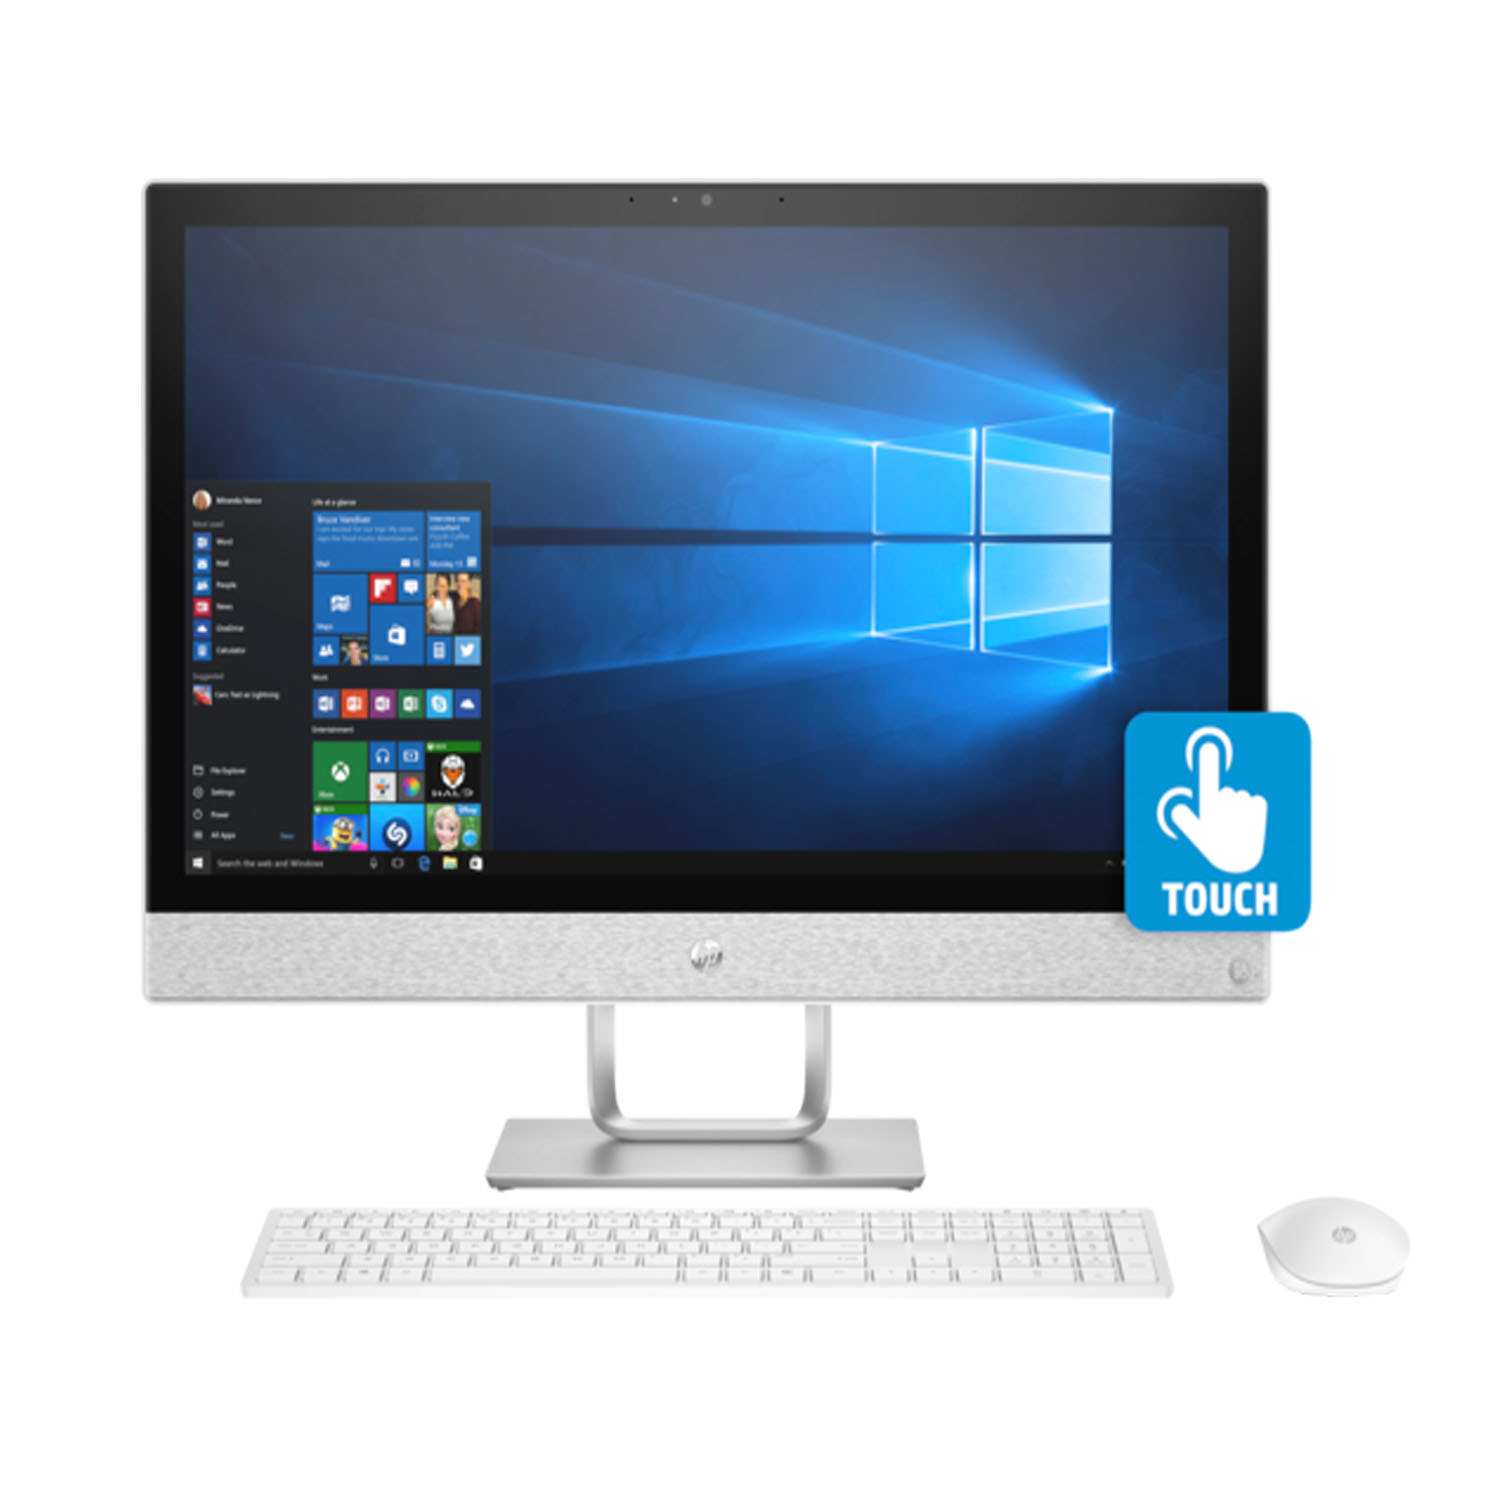 "HP Pavilion 24-x020 Premium Home and Business All-in-One Desktop (AMD A12-9730P Quad-Core, 16GB RAM, 120GB Sata SSD, 23.8"" Full HD 1920 x 1080 Touchscreen, AMD Radeon R7, DVD, Win 10 Pro)"